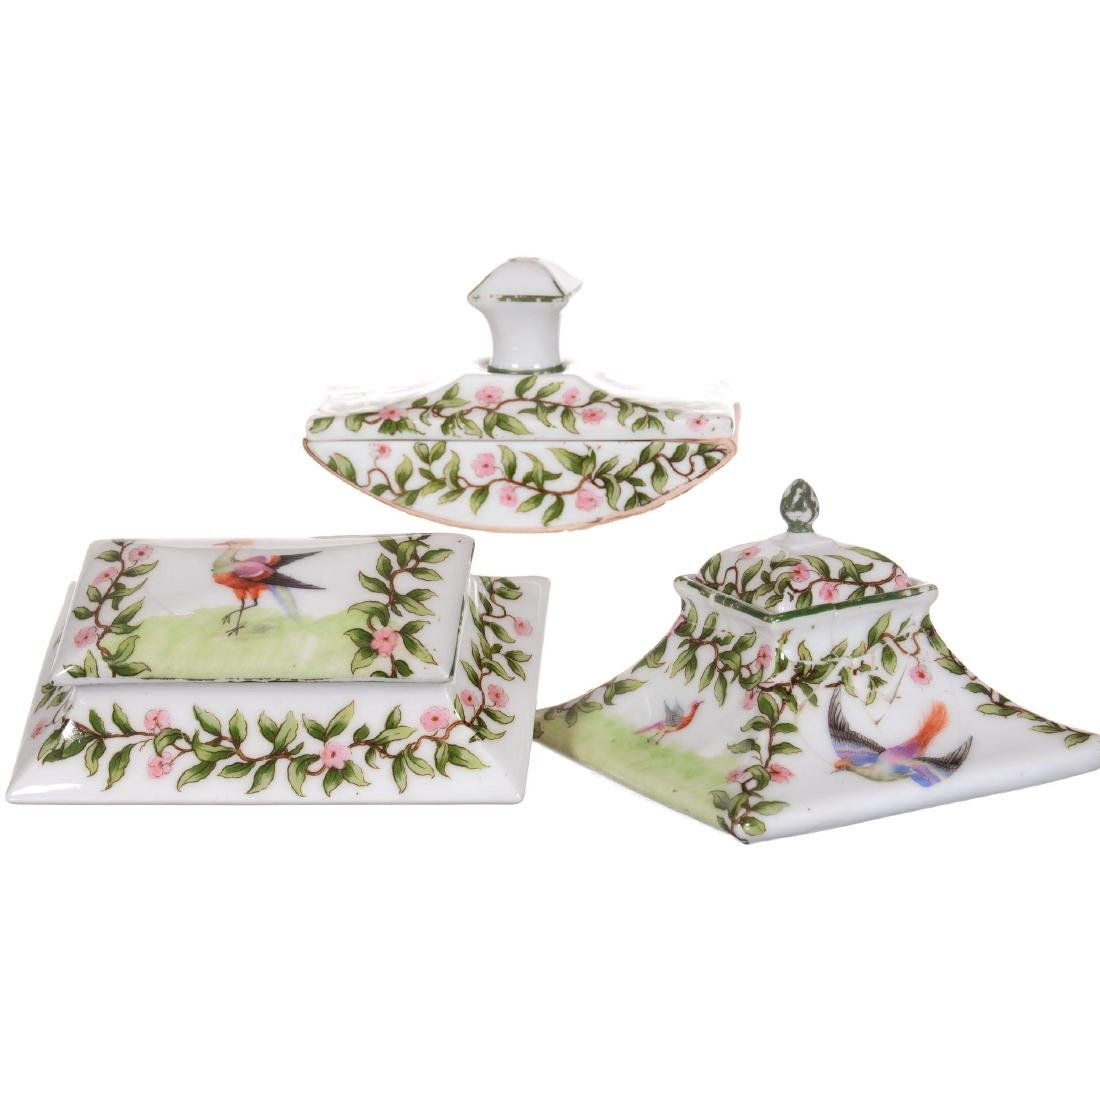 (3) Royal Bayreuth Desk Set Items